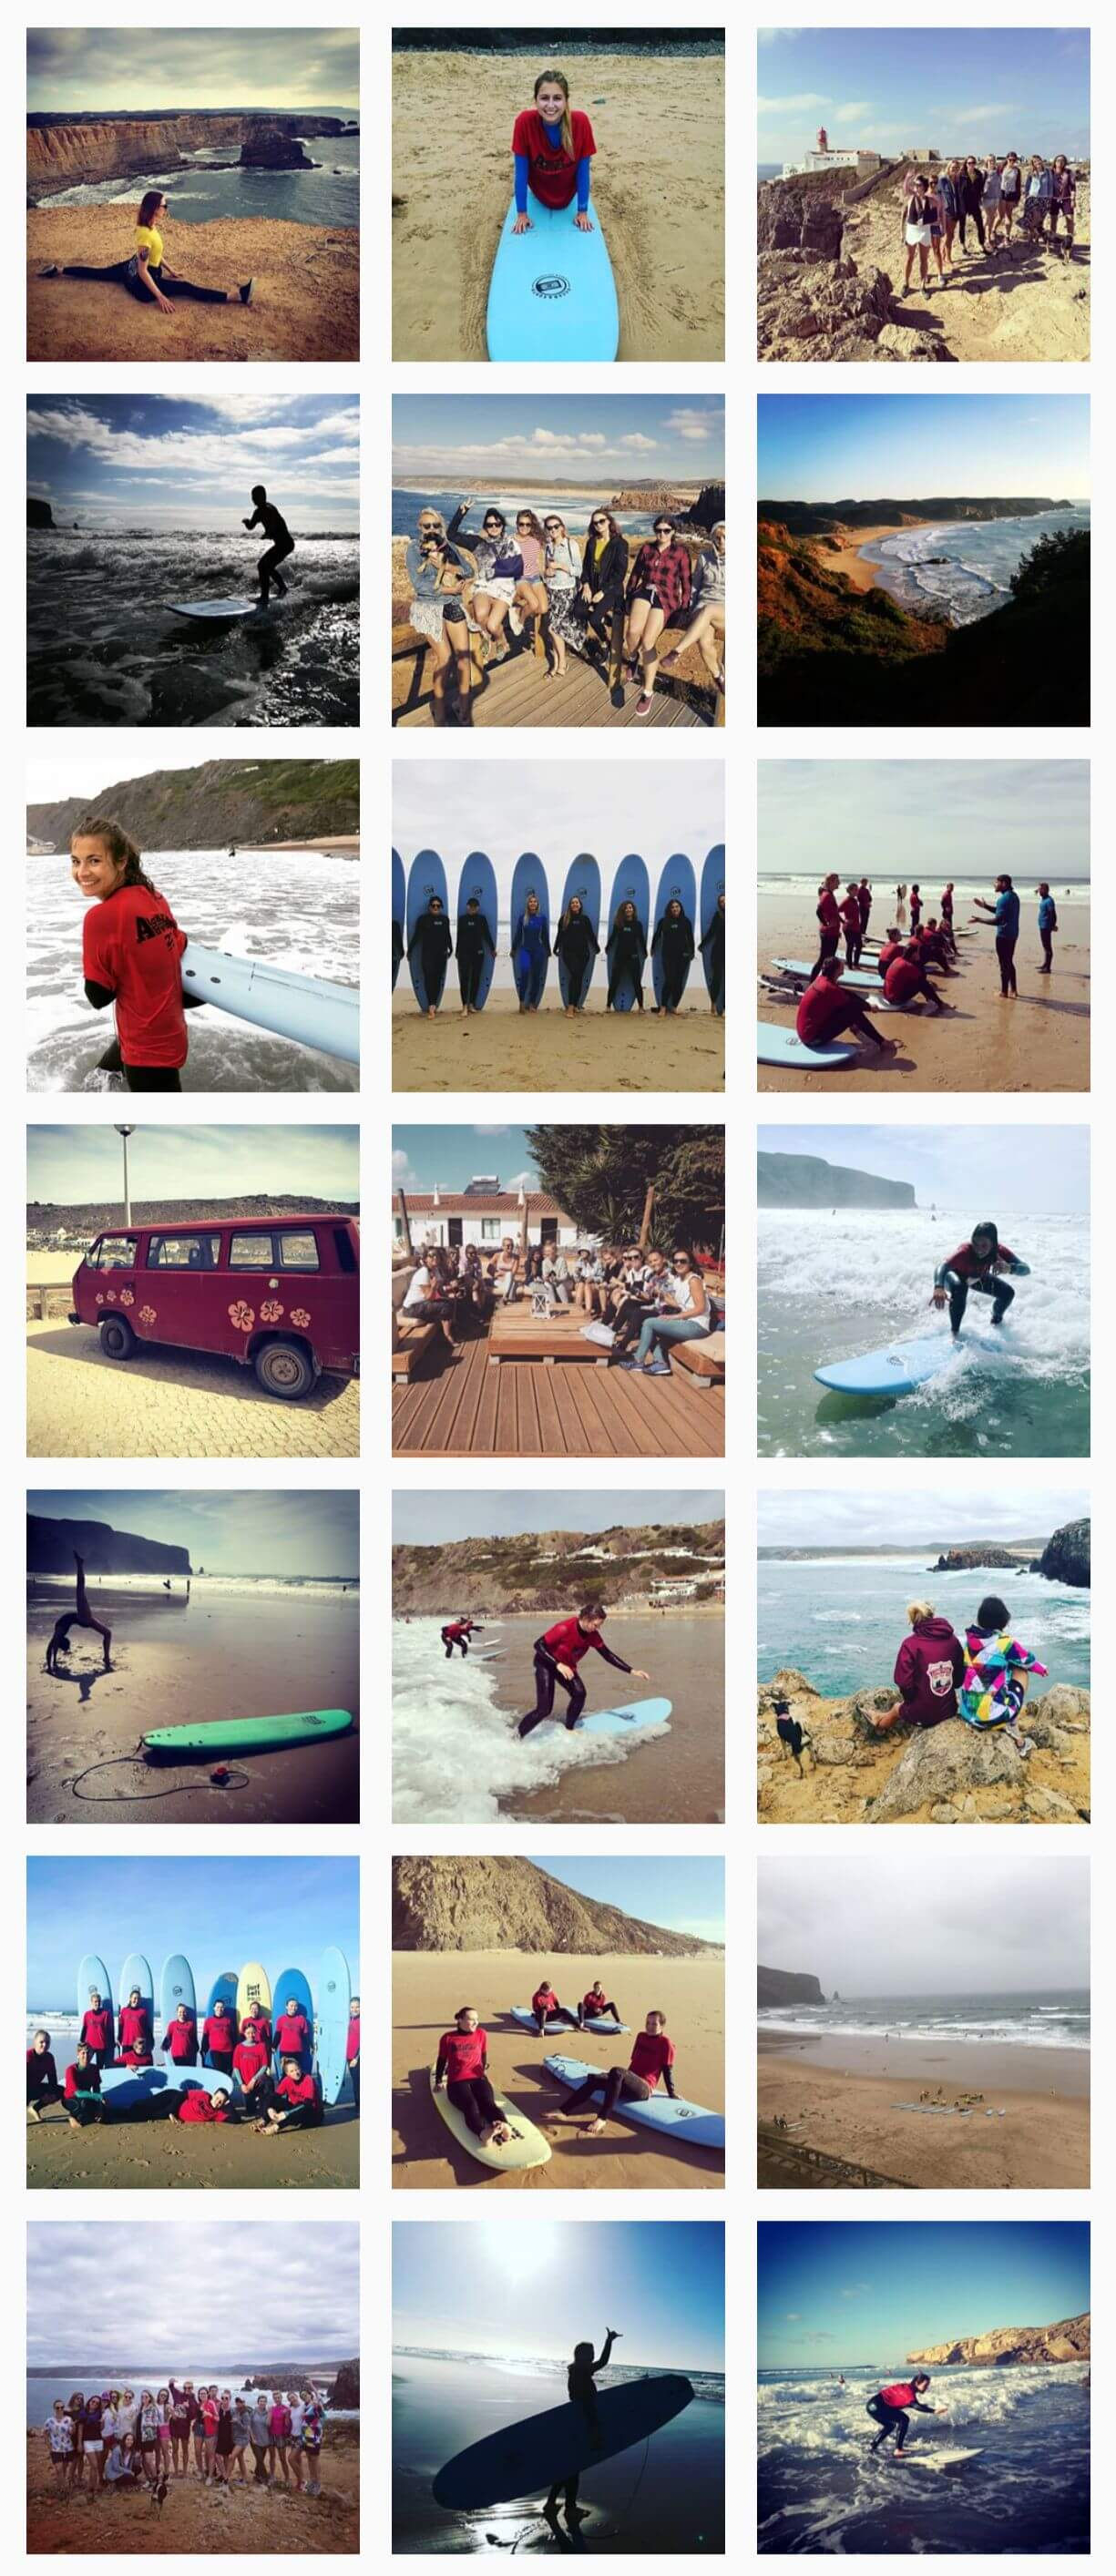 Instagram surferki